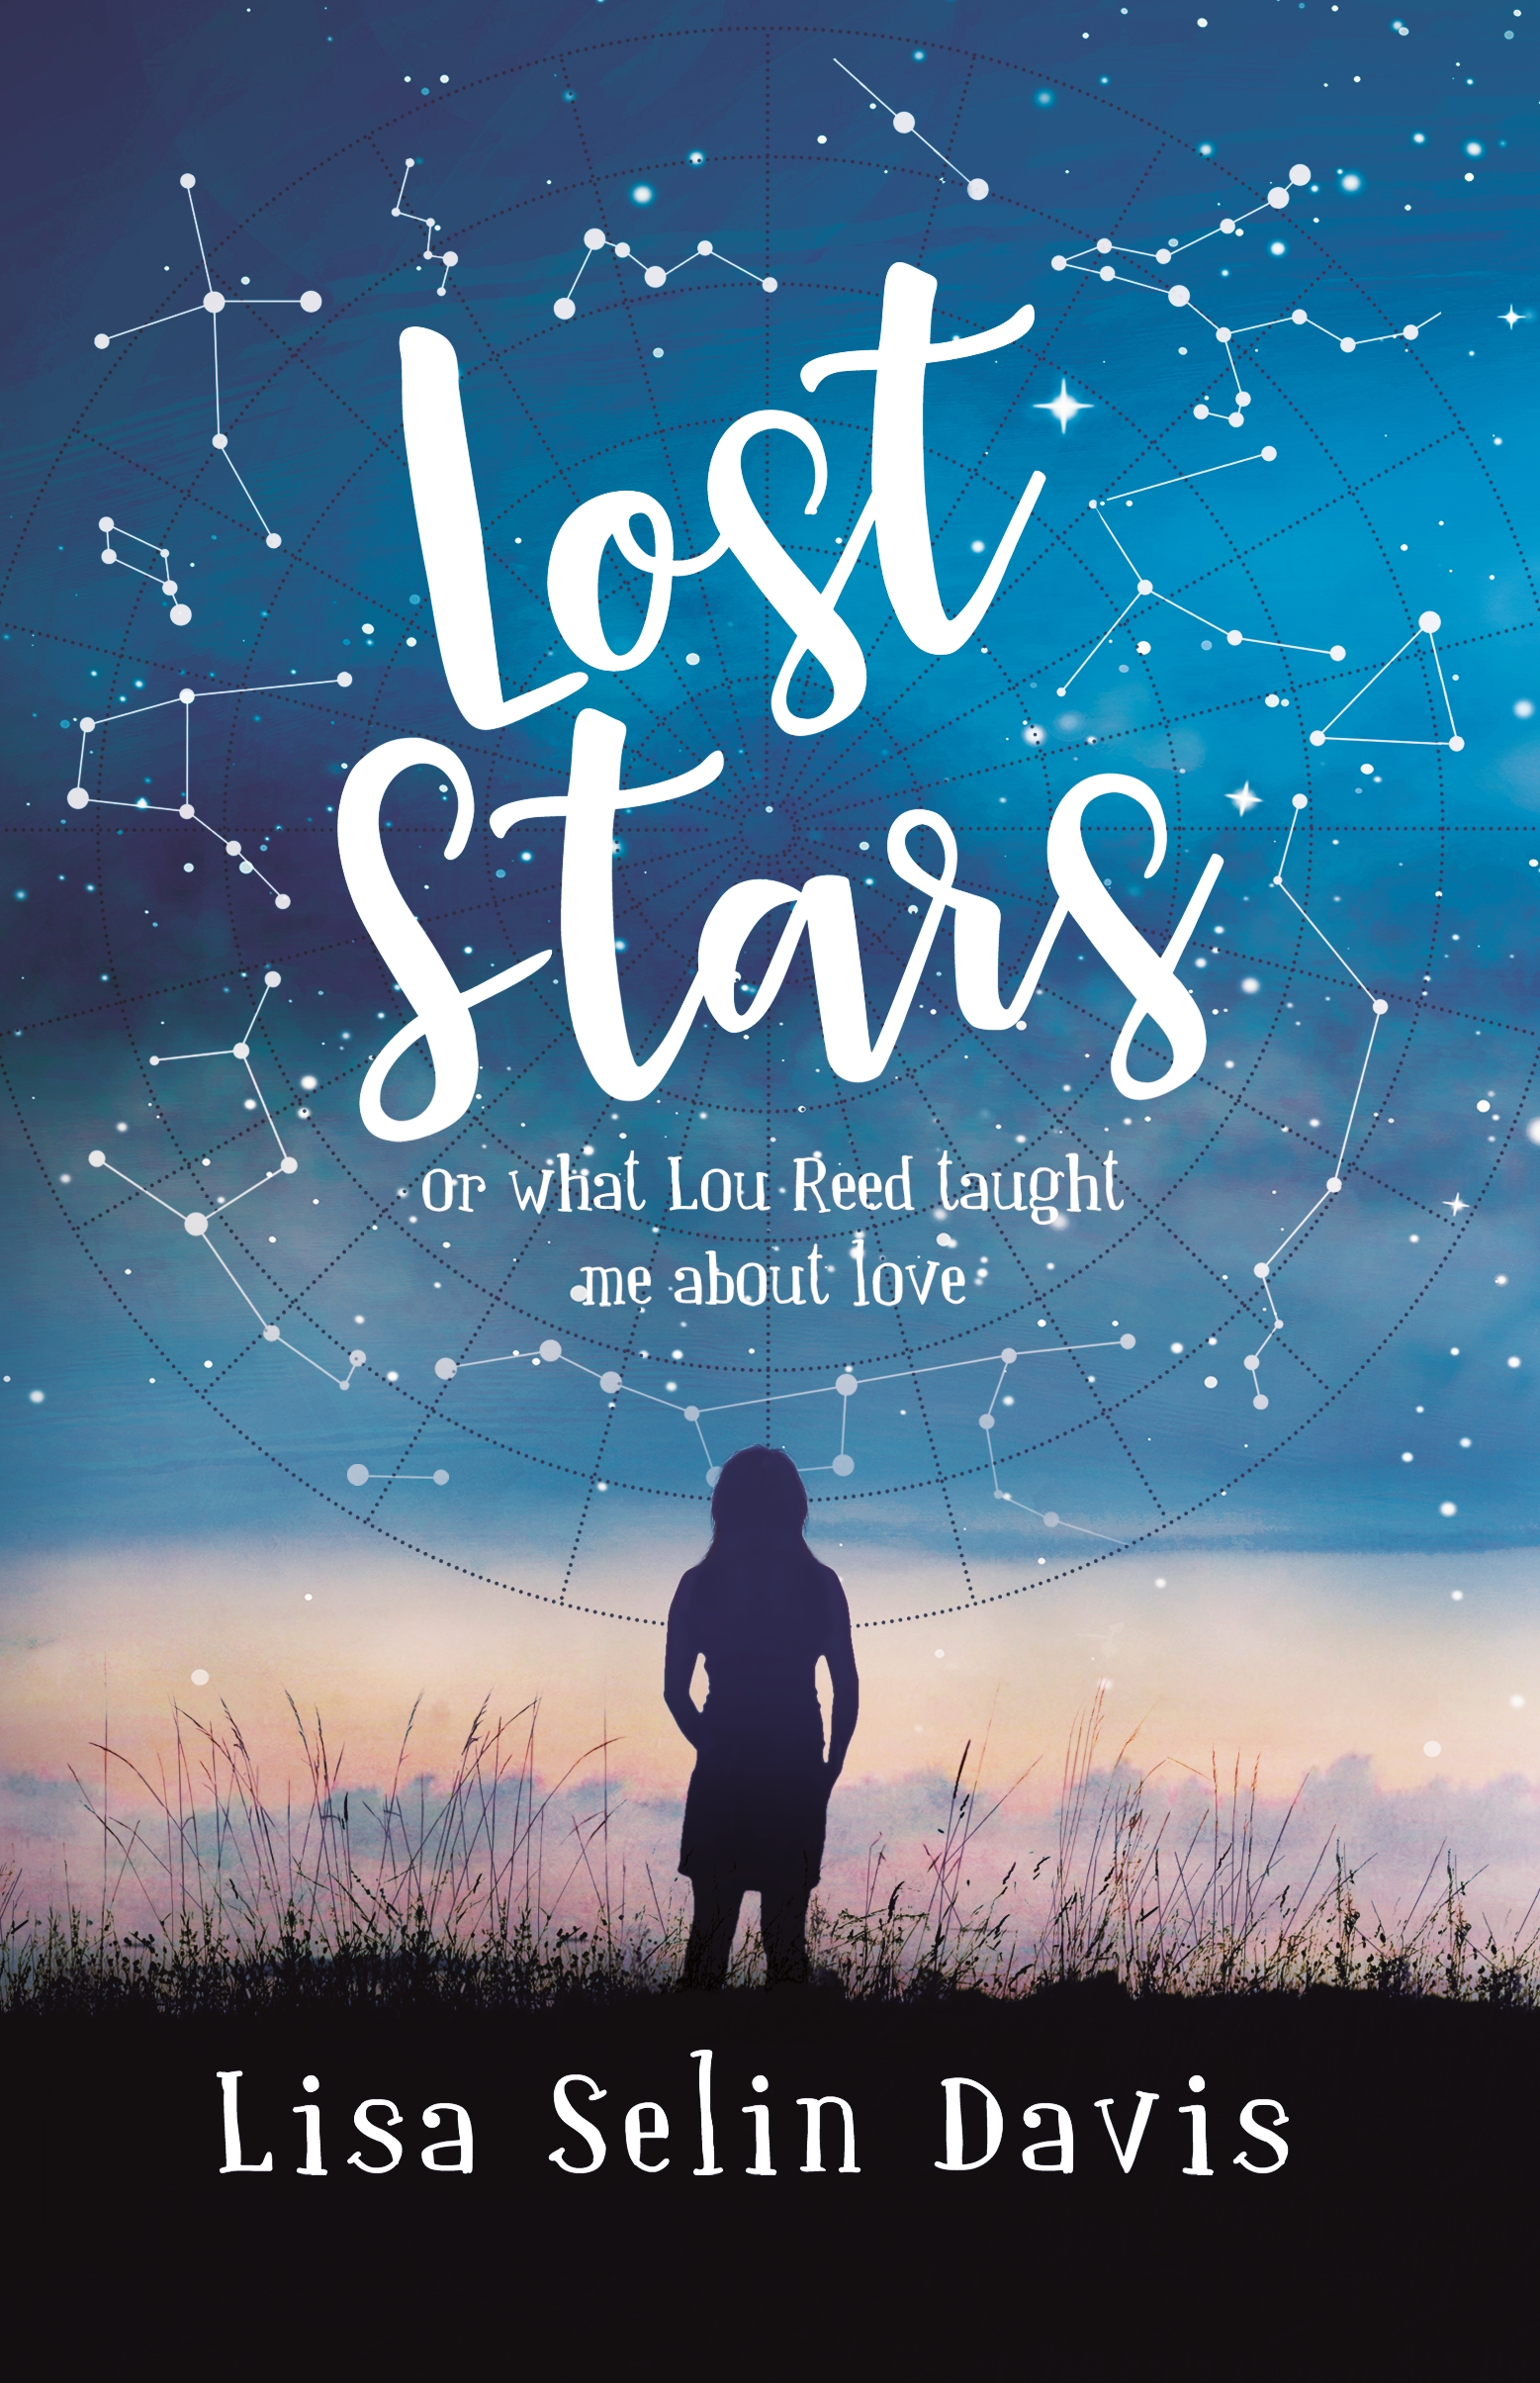 Lost Stars or What Lou Reed Taught Me About Love by Lisa Selin Davis